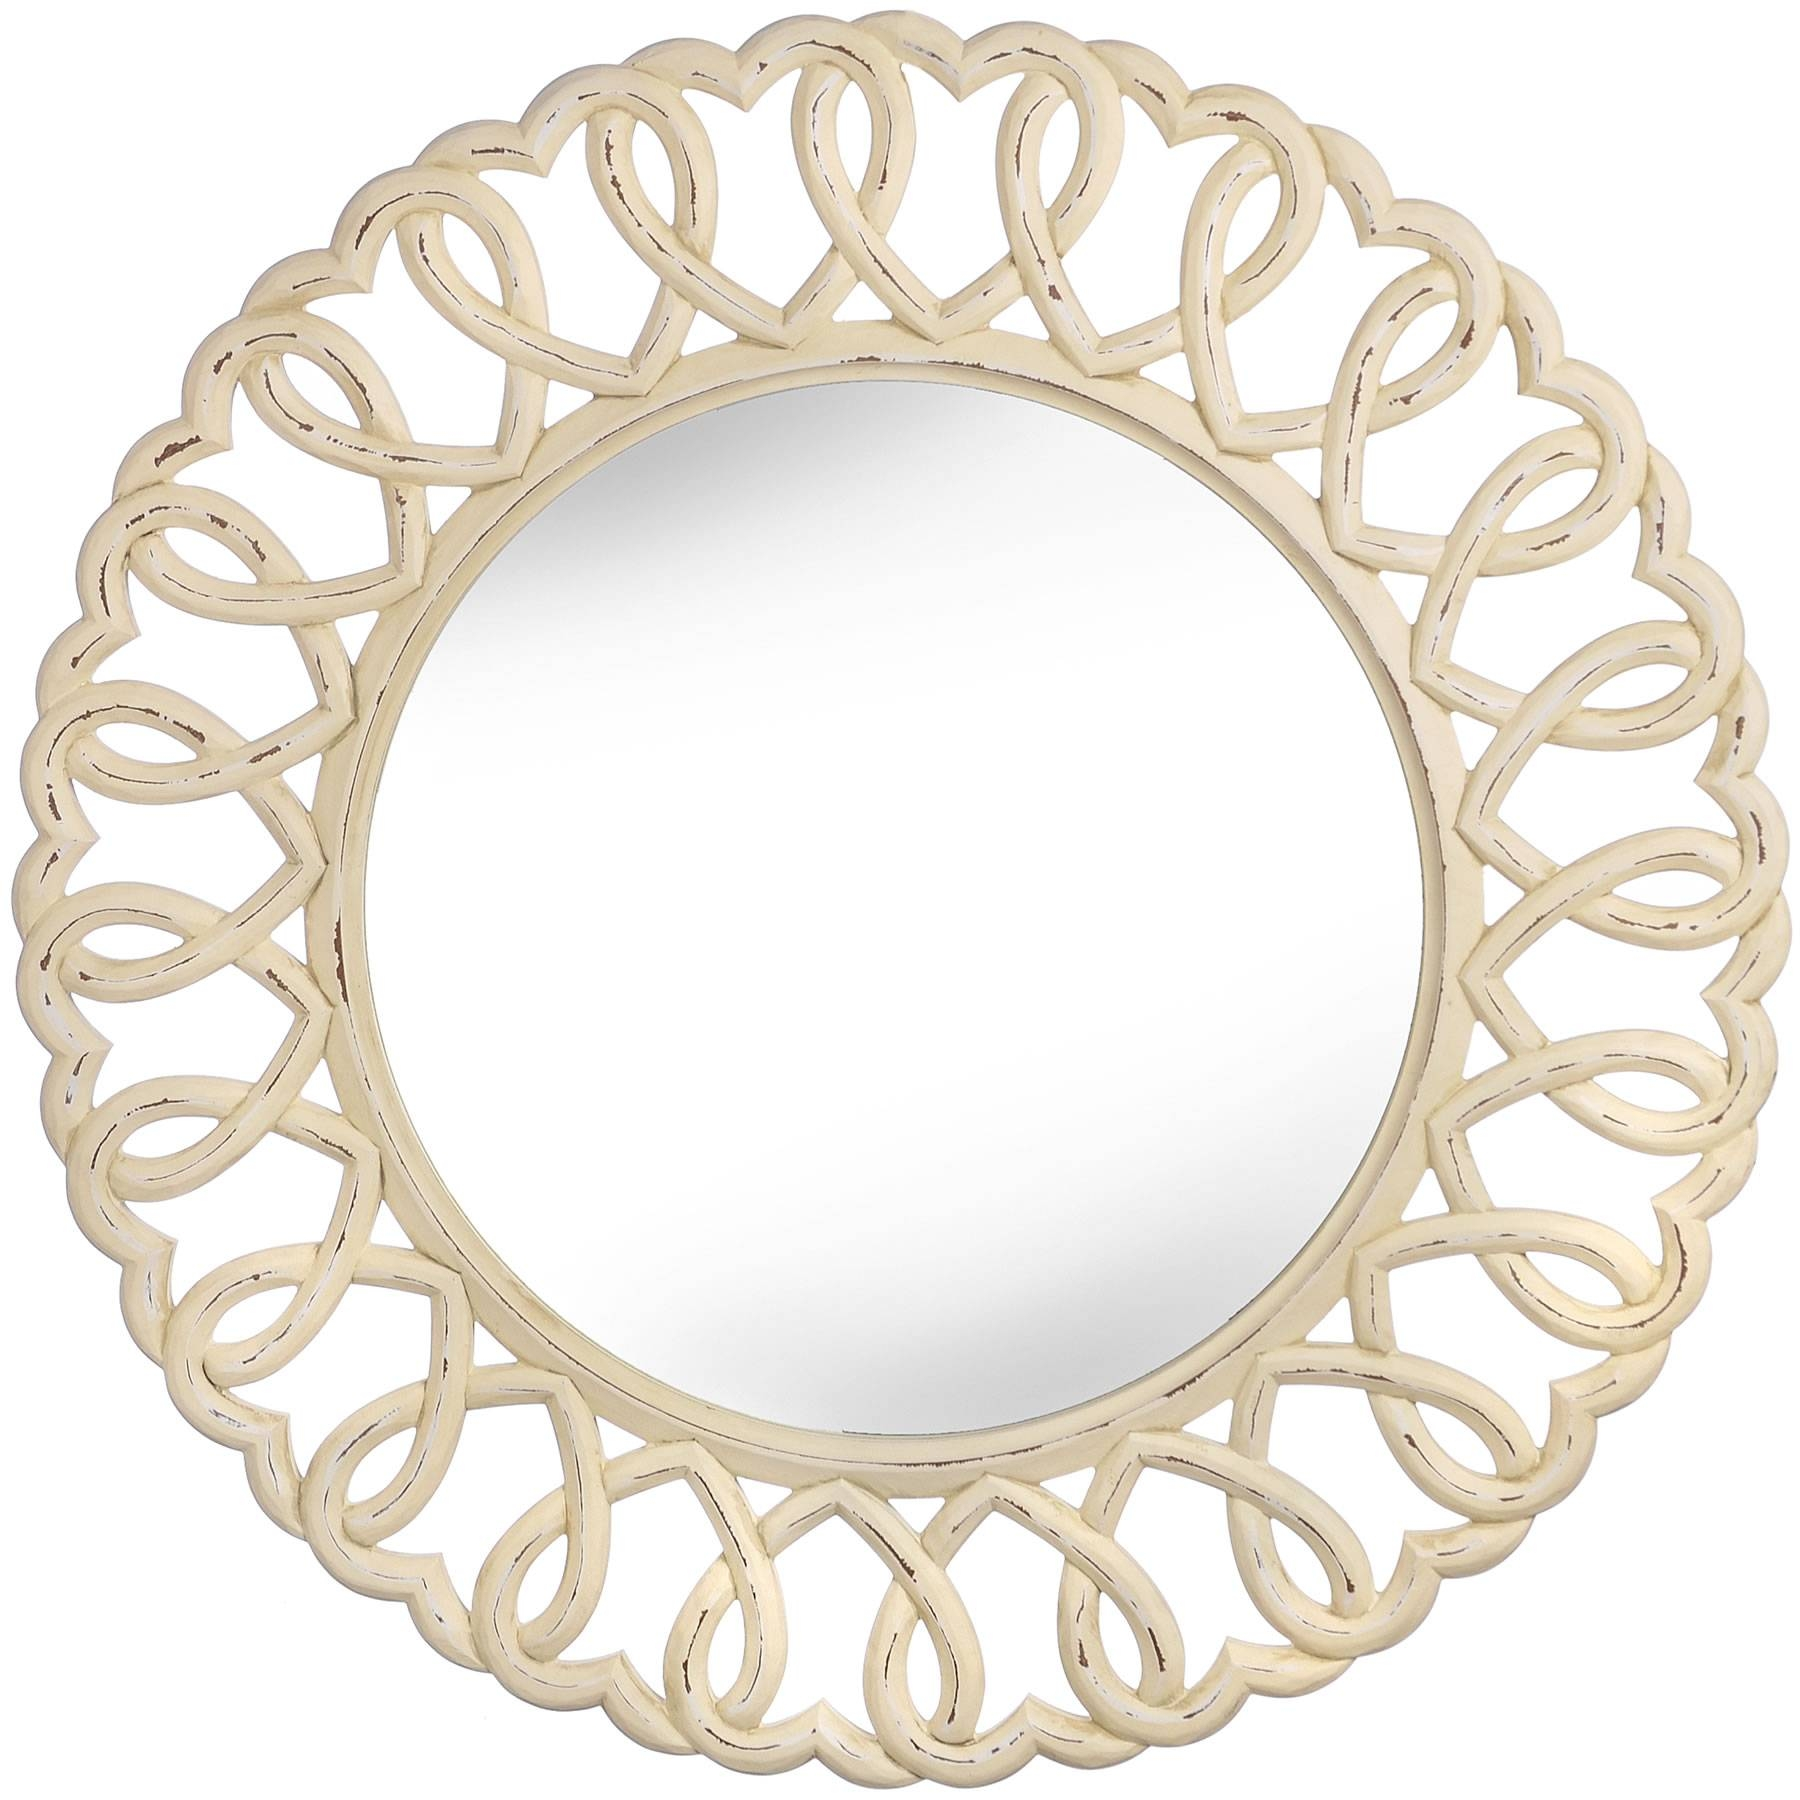 Olivia Heart Wall Mirror, Stunning Large Mirror 90Cm, Round Wall within Heart Wall Mirrors (Image 18 of 25)